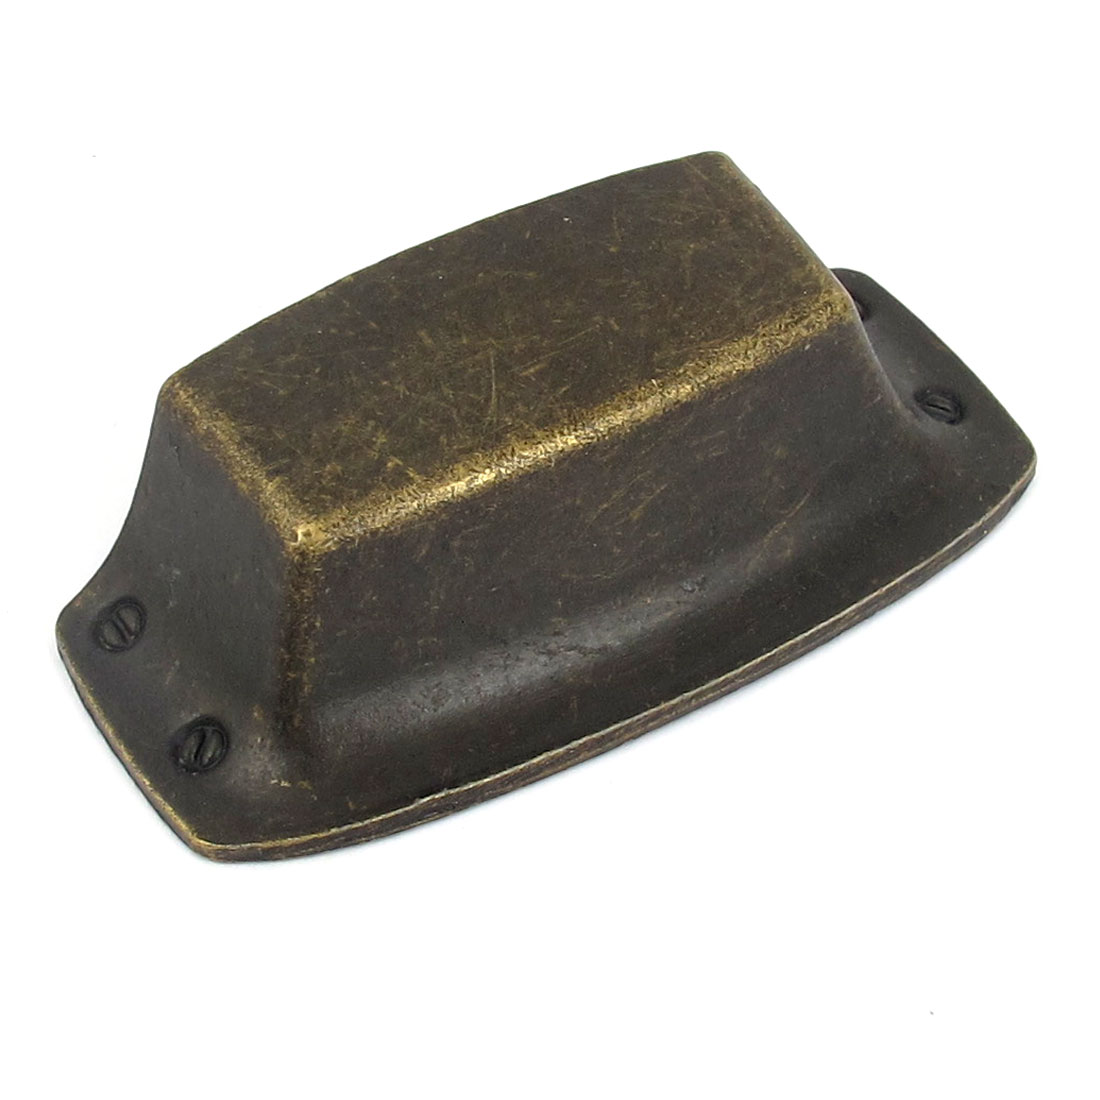 Shell Shaped Square Cabinet Cupboard Bin Metal Door Pull Handle Knob Bronze Tone